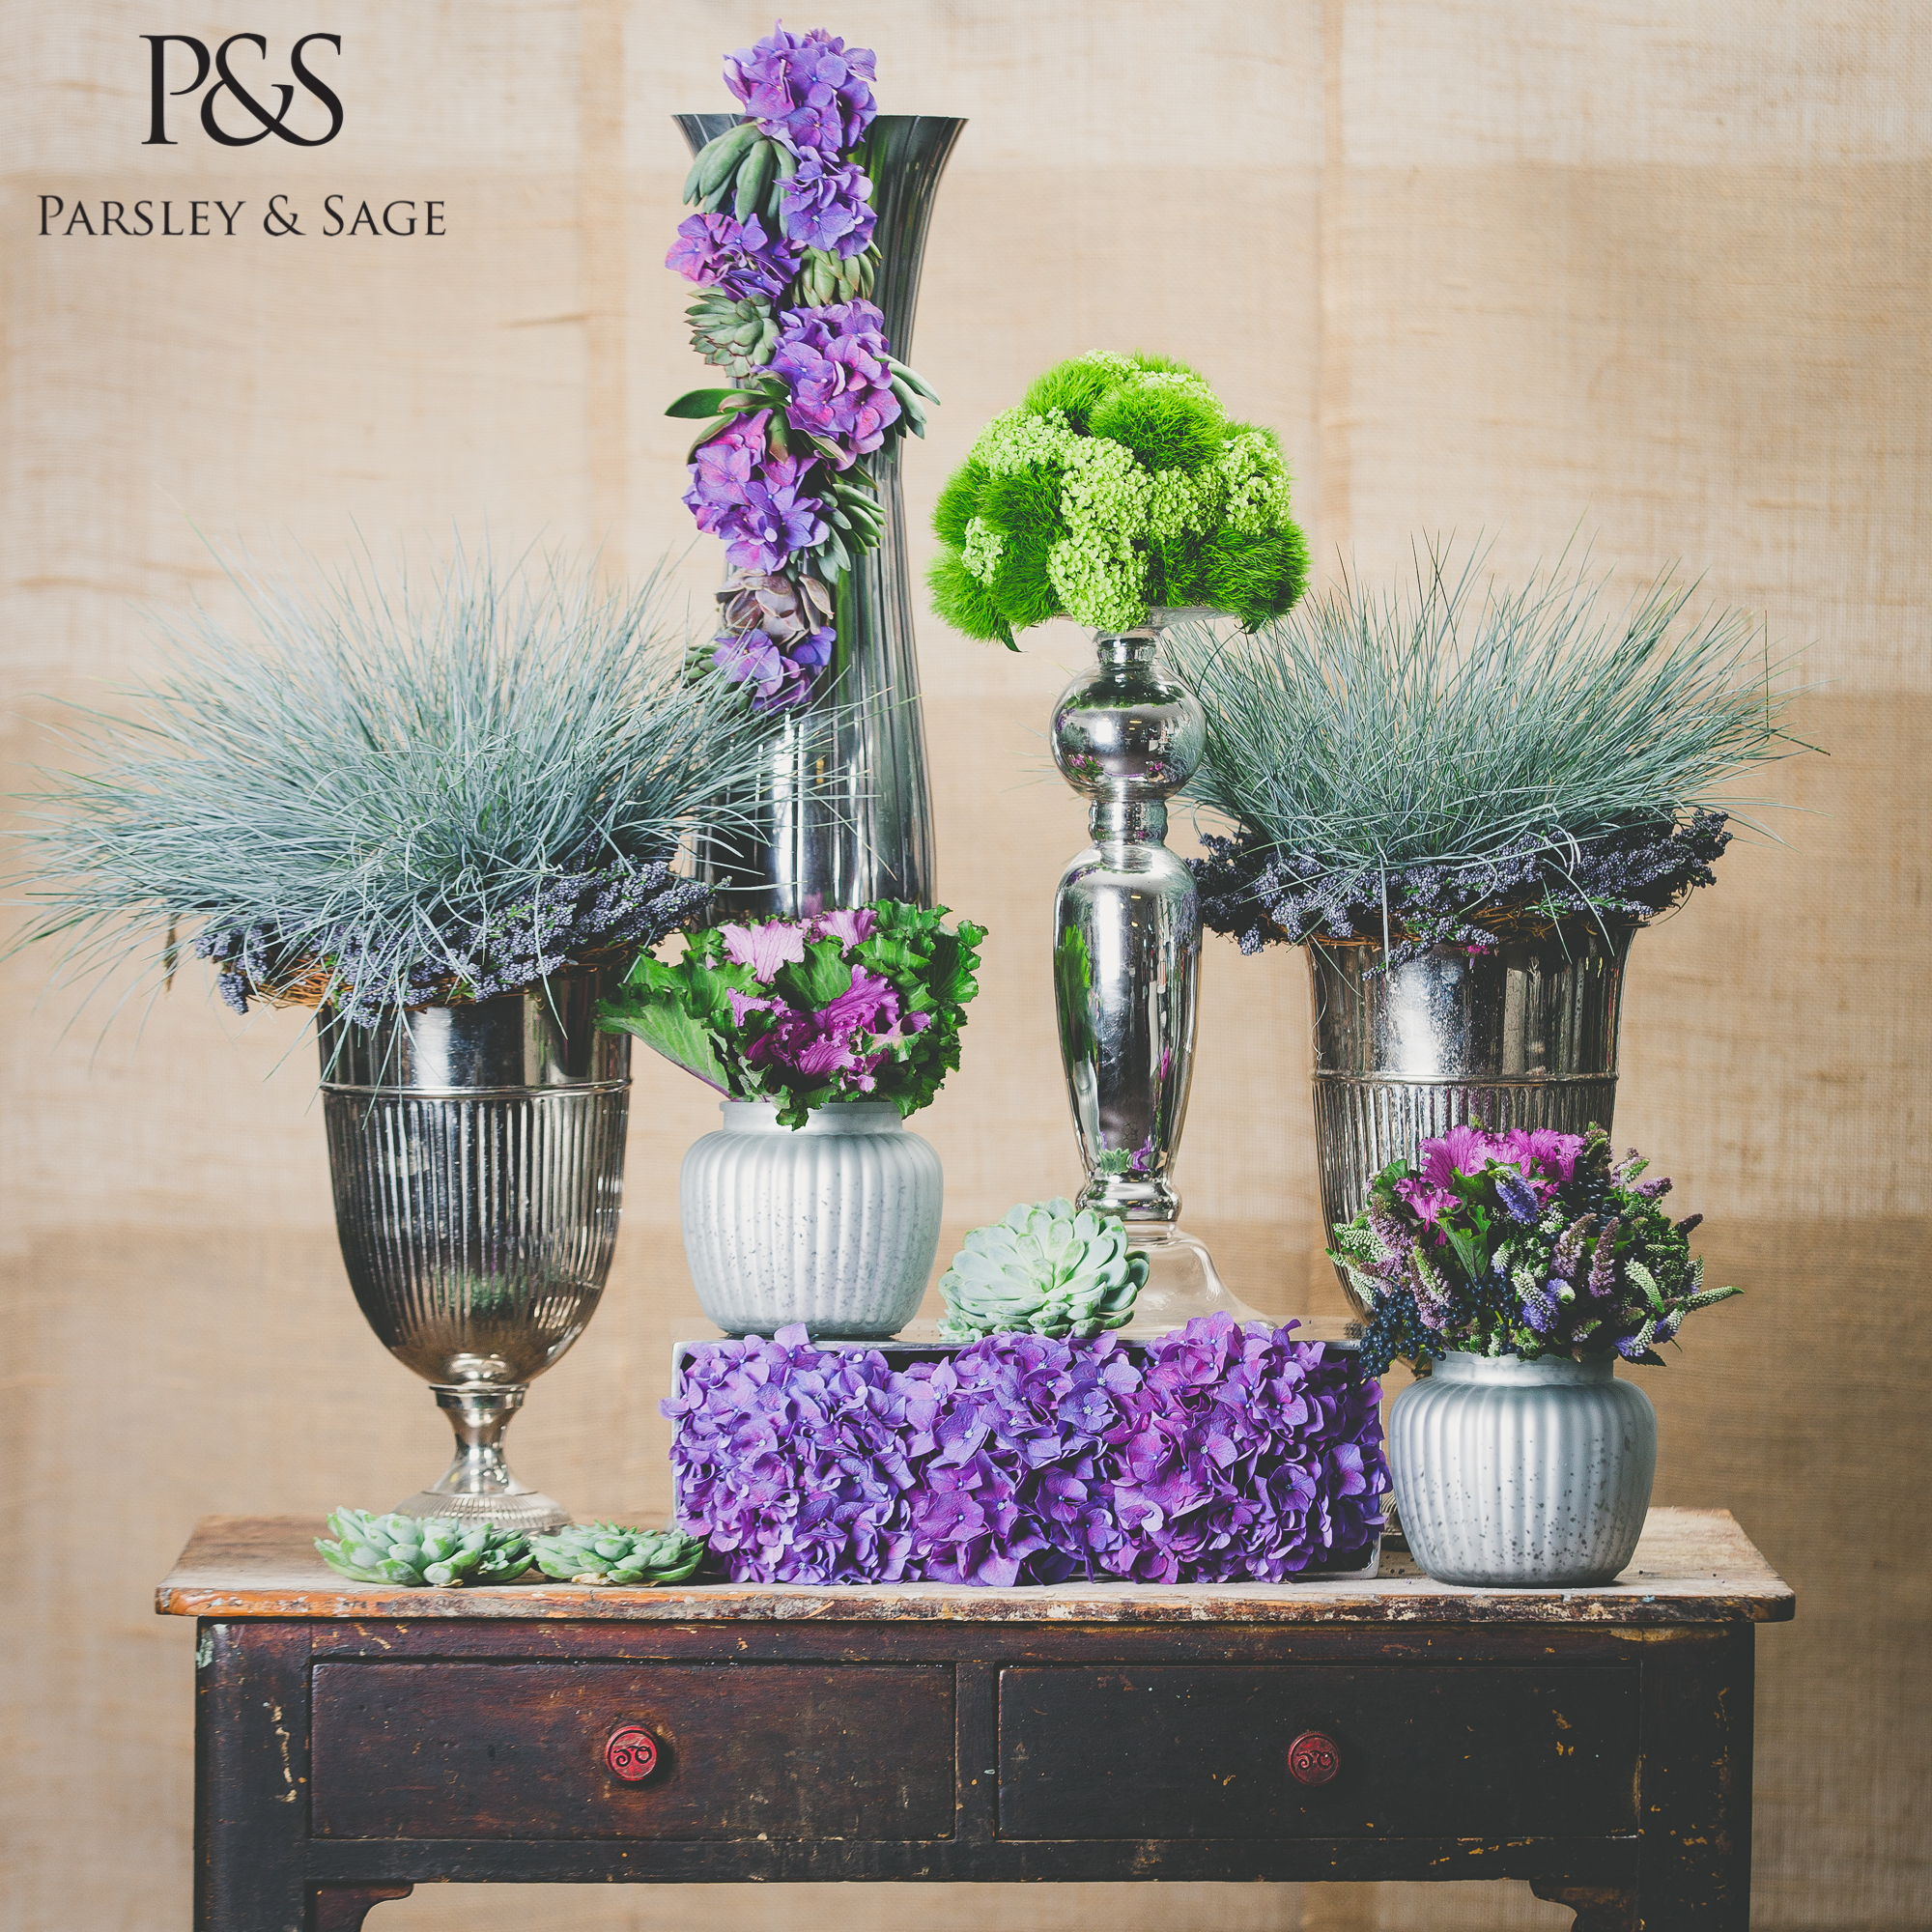 parsley-and-sage-stoke-on-trent-florist-staffordshire-florist-staffordshire-wedding-florist-design-led-florist, Parsley & Sage